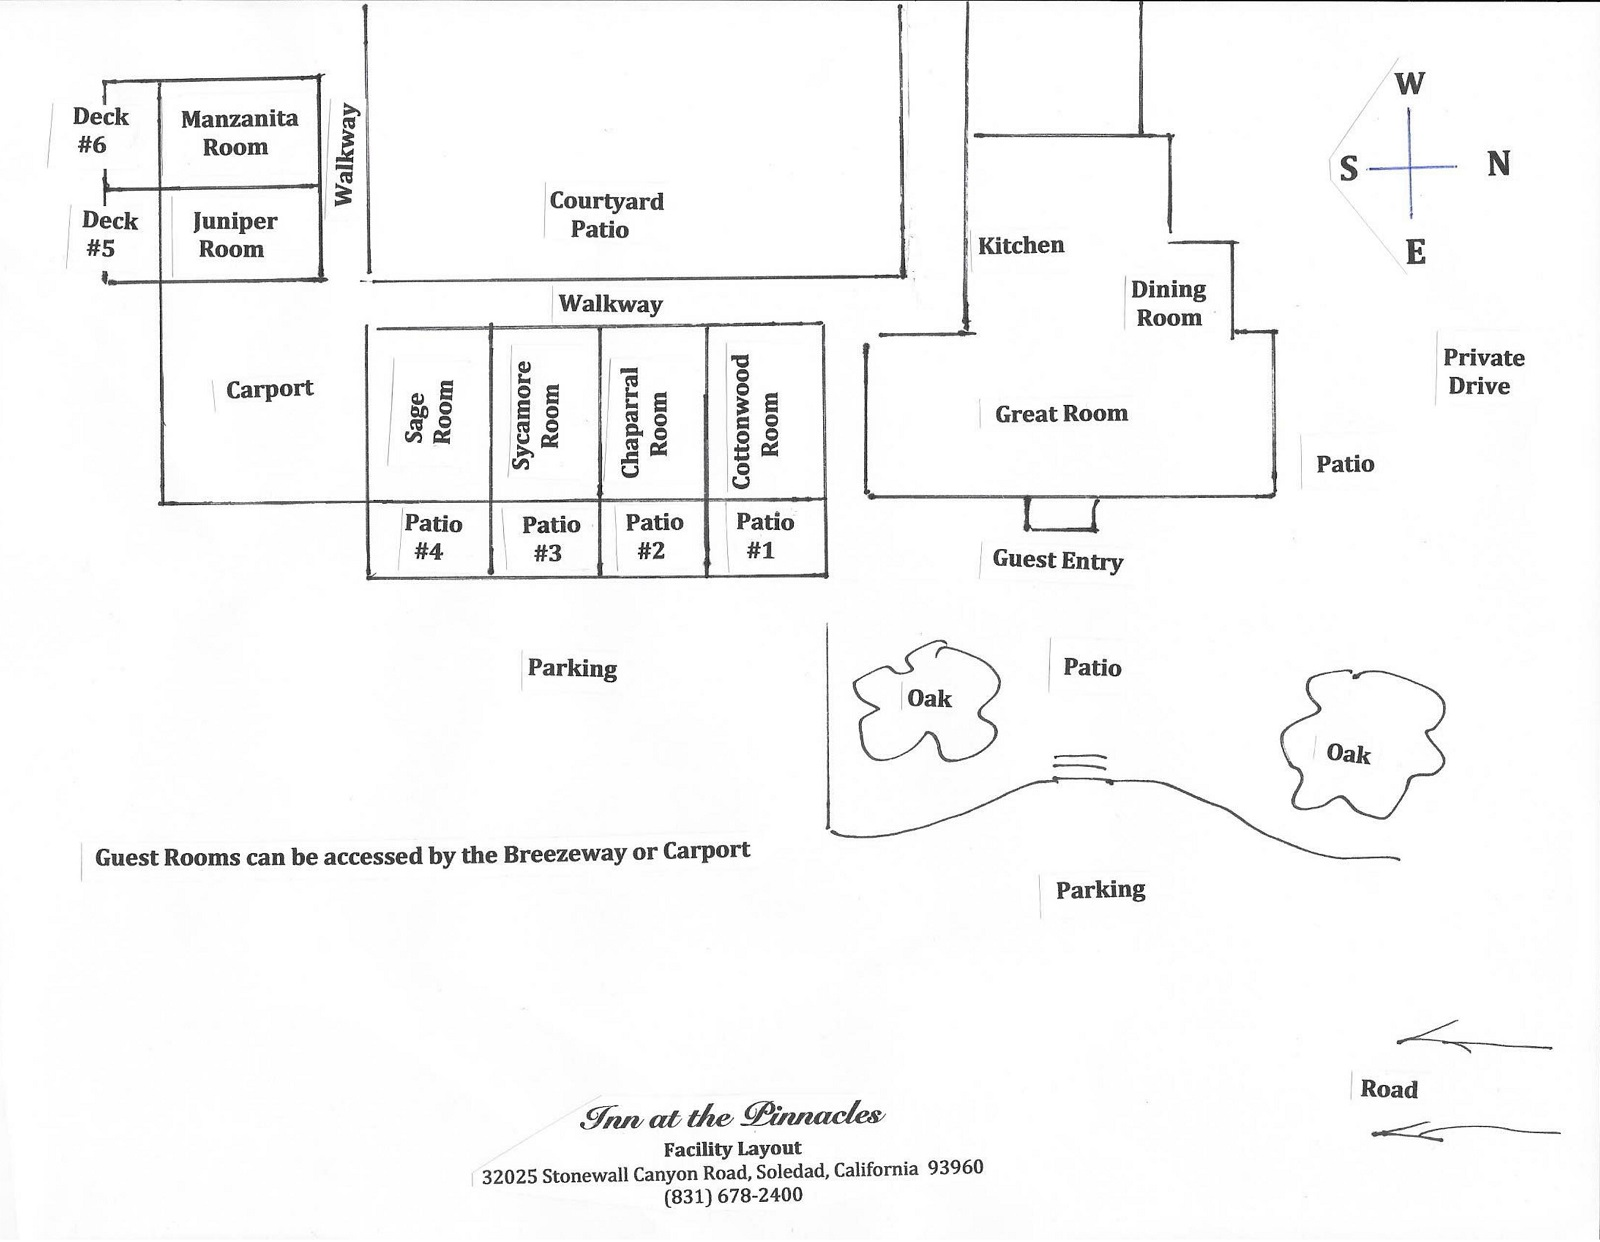 Inn at the Pinnacles | facility layout diagram | Soledad, CA